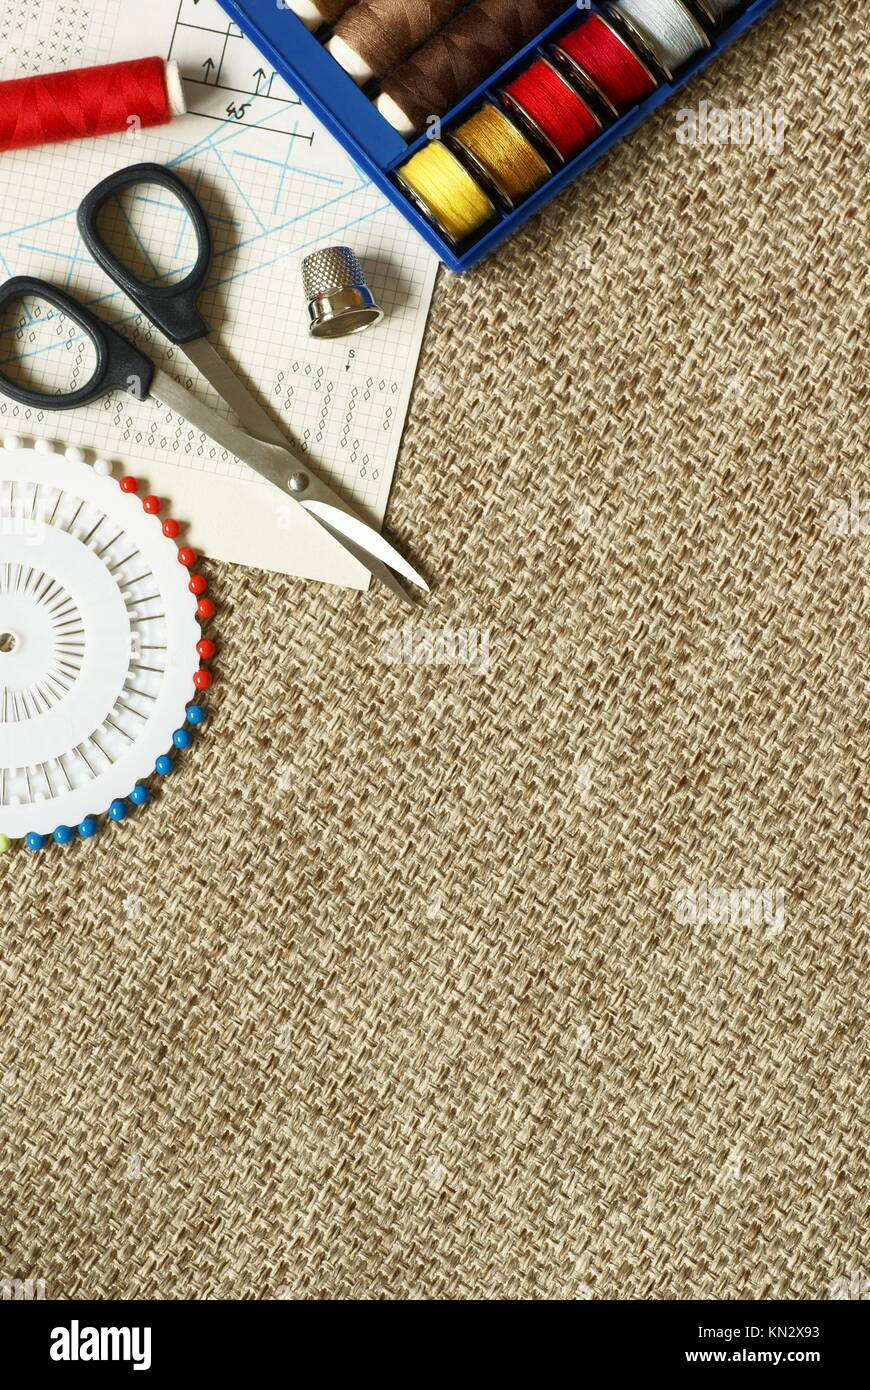 Fabrik, scisors ans sewing items with copy space. - Stock Image